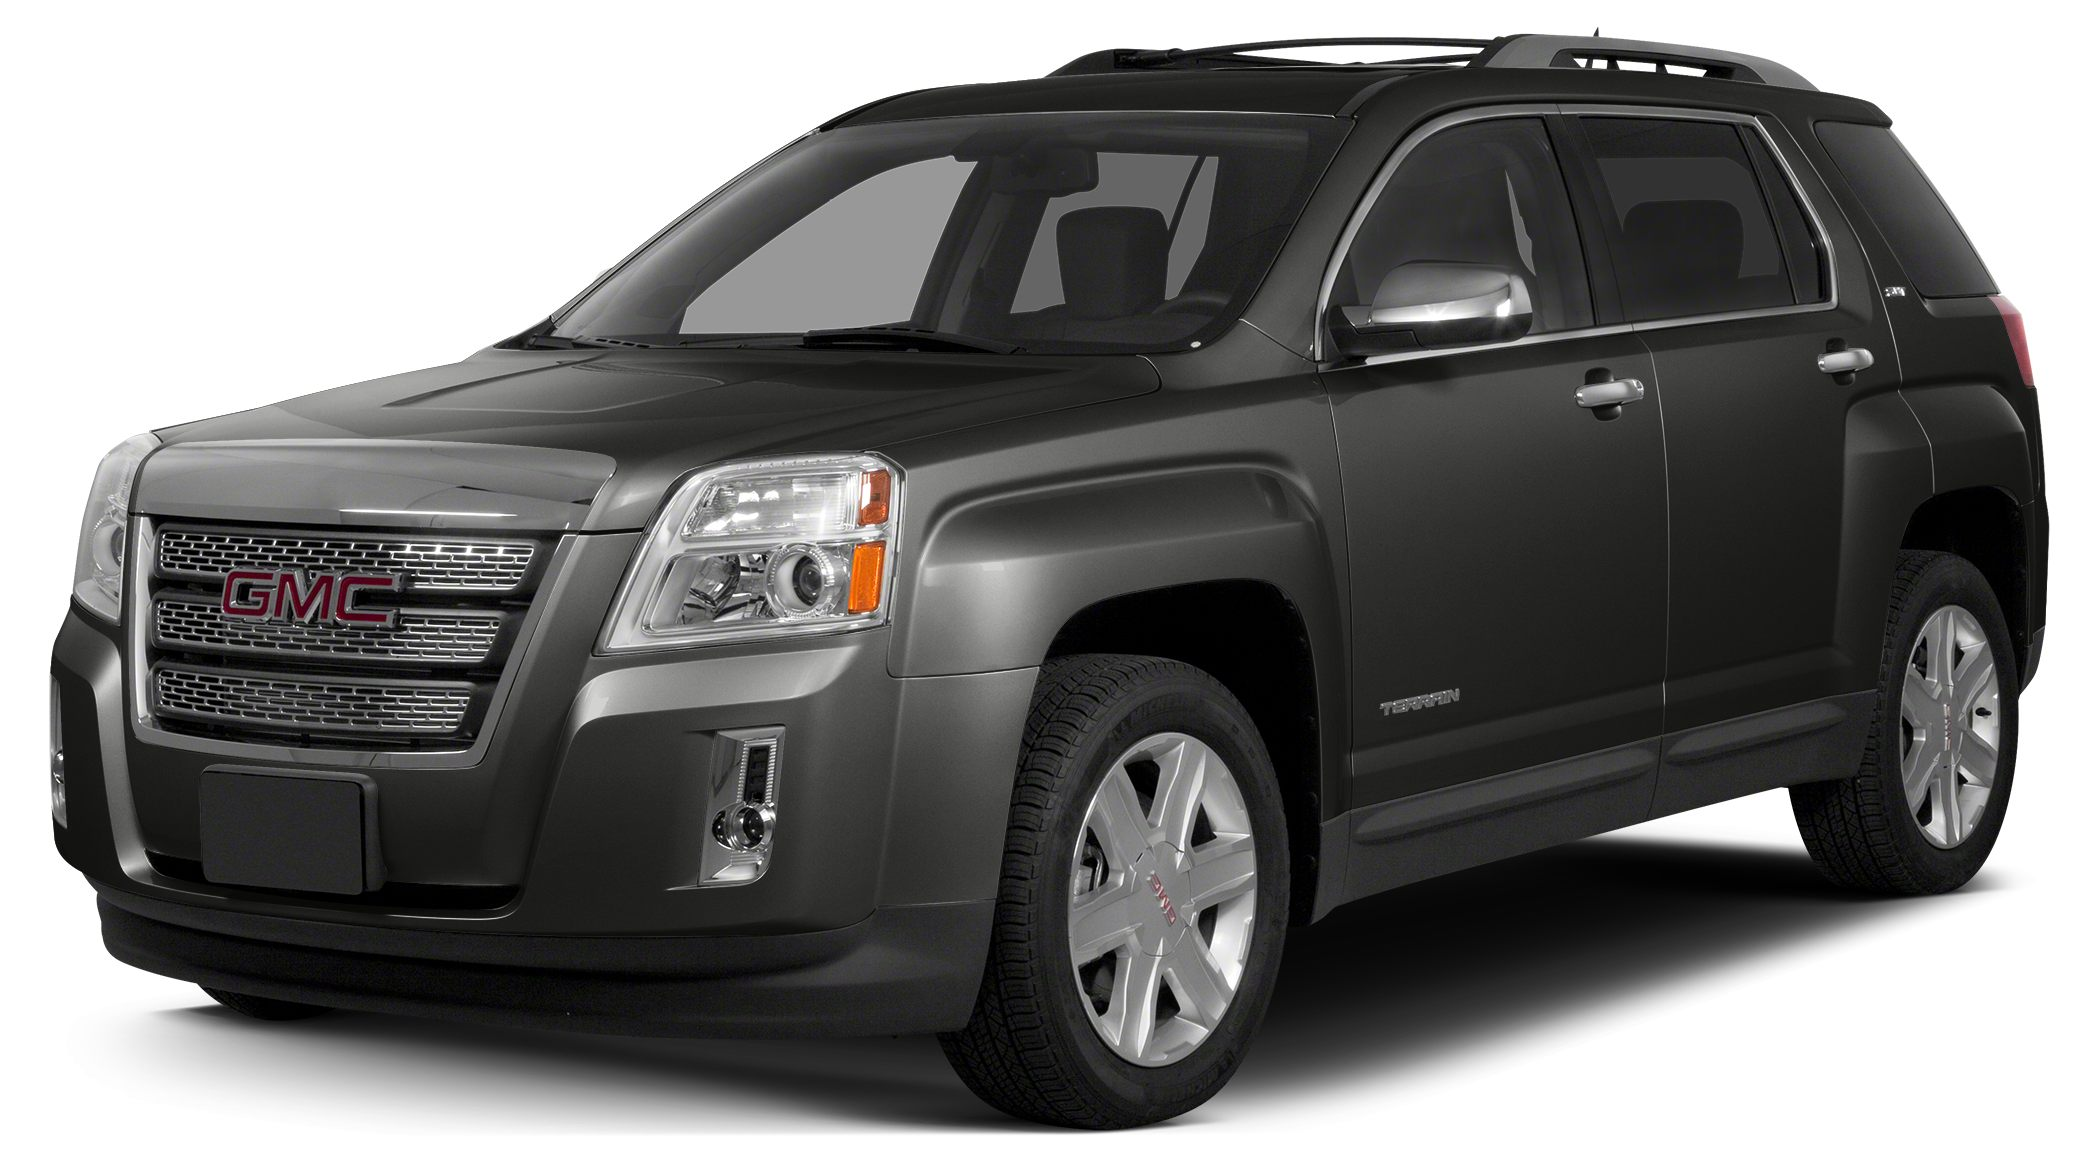 2015 GMC Terrain SLE-1 CARFAX 1-Owner ONLY 17106 Miles SLE trim EPA 32 MPG Hwy22 MPG City Al